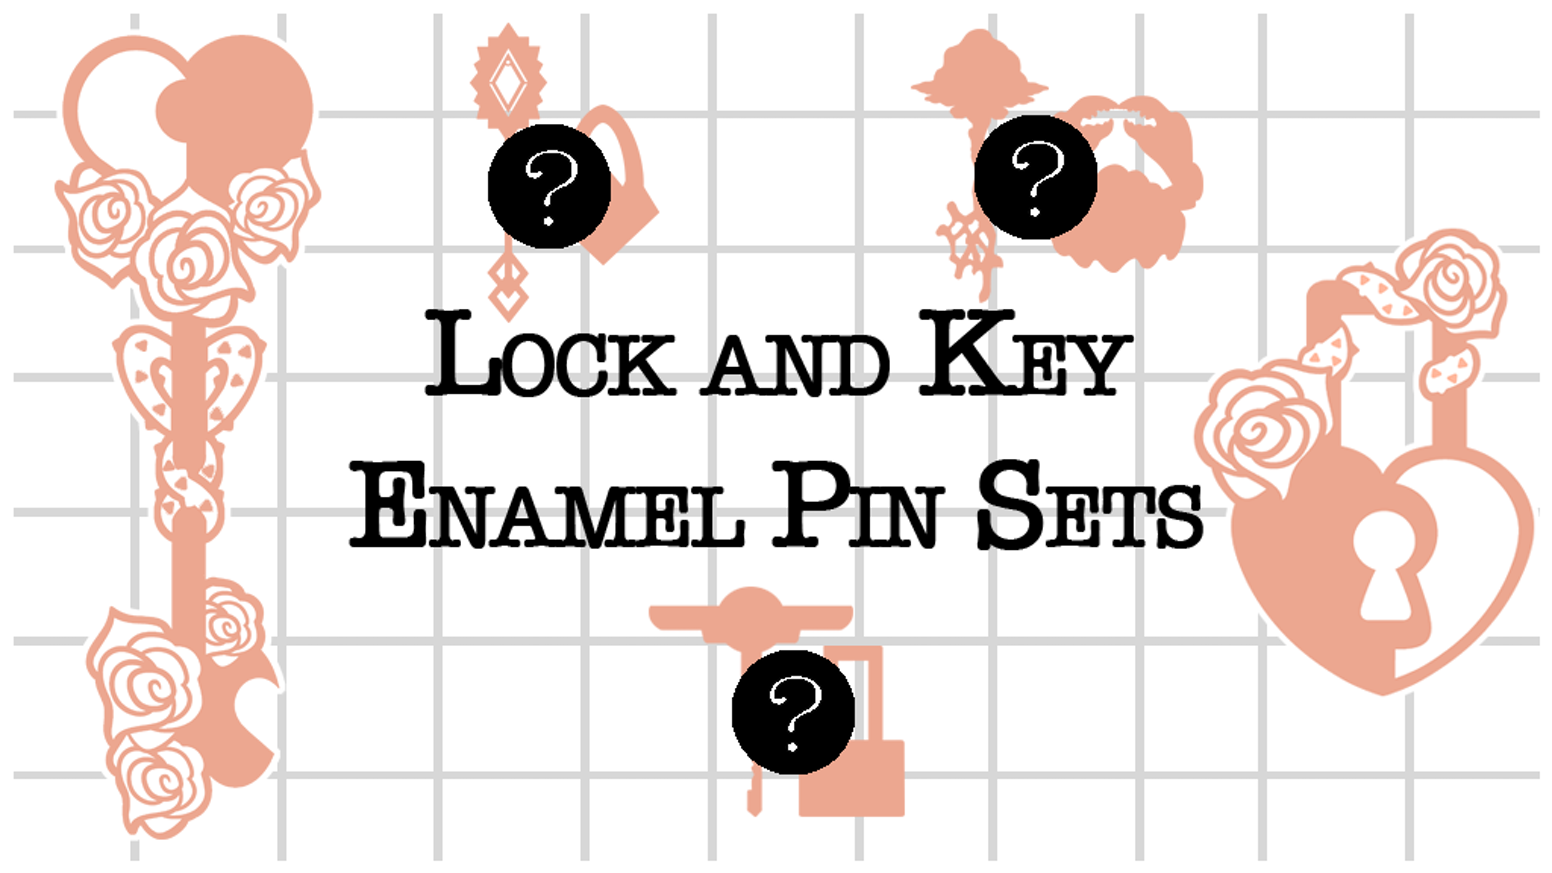 A series of 4 lock and key enamel pins released in pairs.